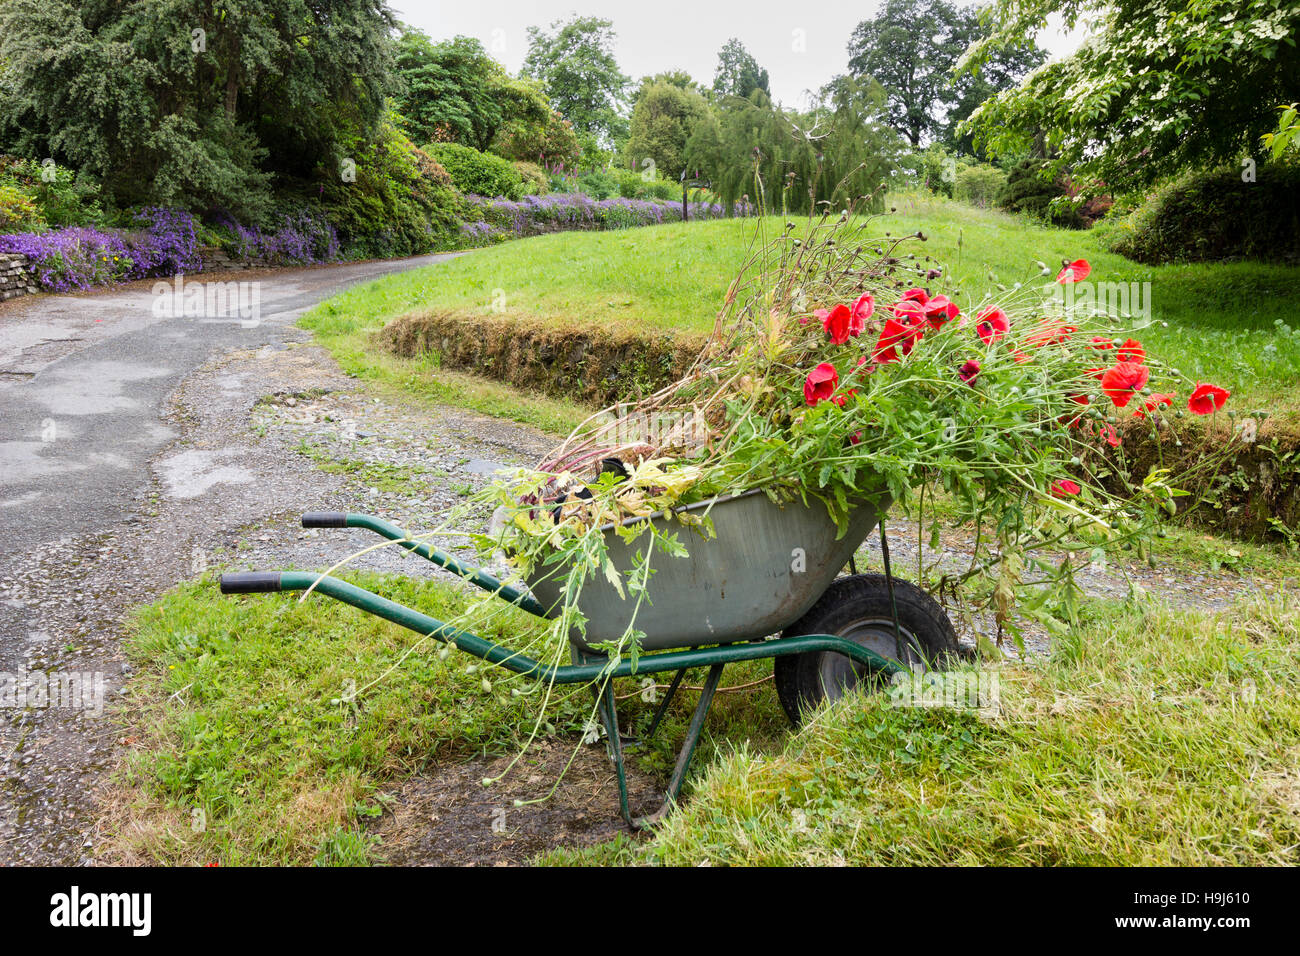 Wheelbarrow full of removed poppies and weeds at the Garden House, Devon - Stock Image